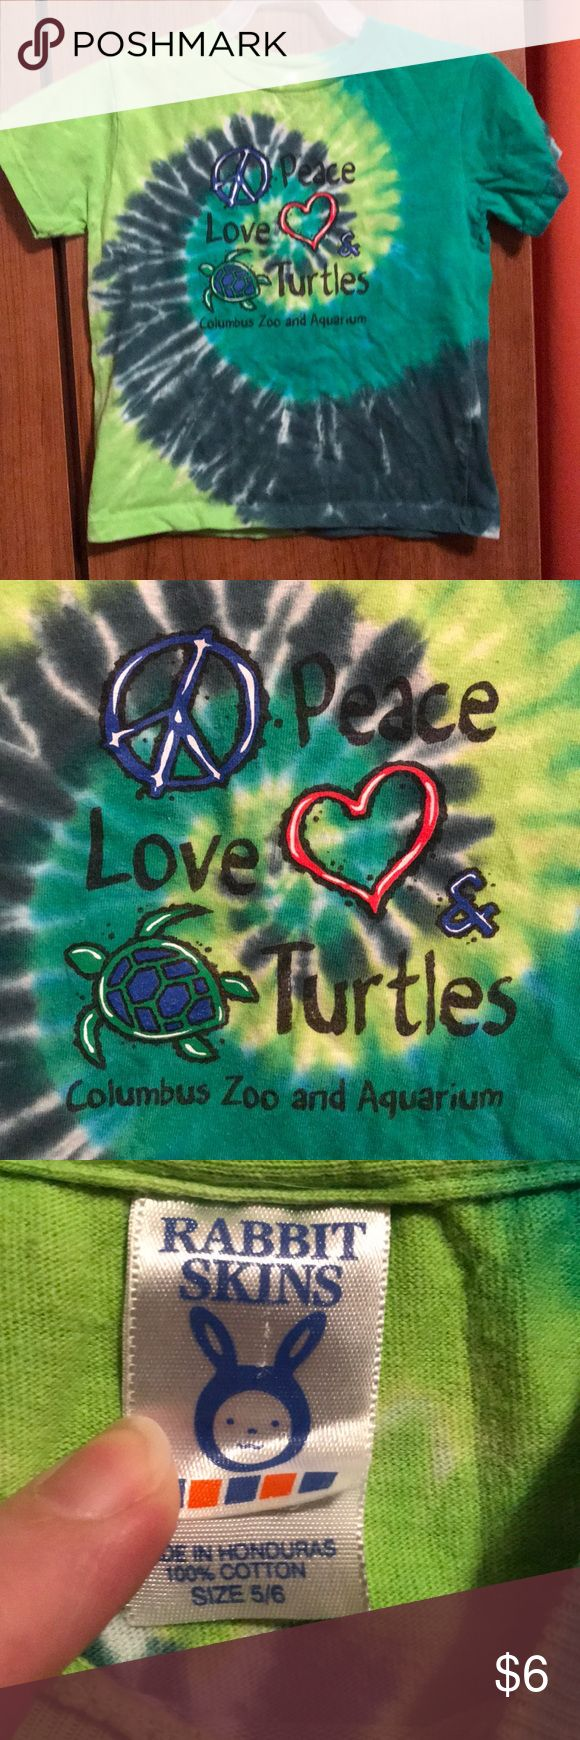 Kids tie dye peace love and turtles sz 4-5 T-shirt Kids tie dye peace love and turtles sz 4-5 T-shirt Shirts & Tops Tees - Short Sleeve